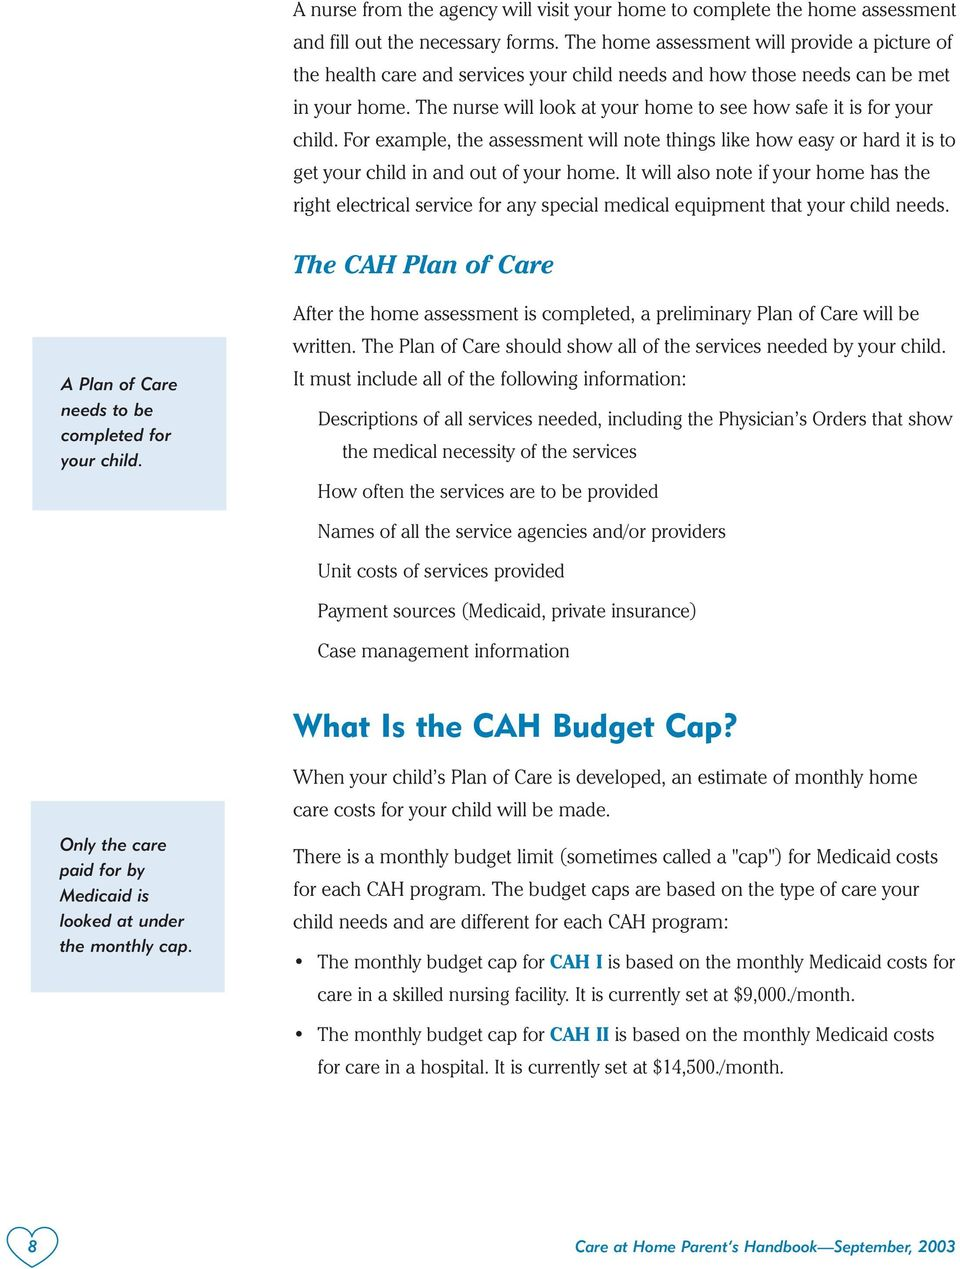 Only the care paid for by Medicaid is looked at under the monthly cap. It is important to remember that all other insurance must be billed before Medicaid is billed.